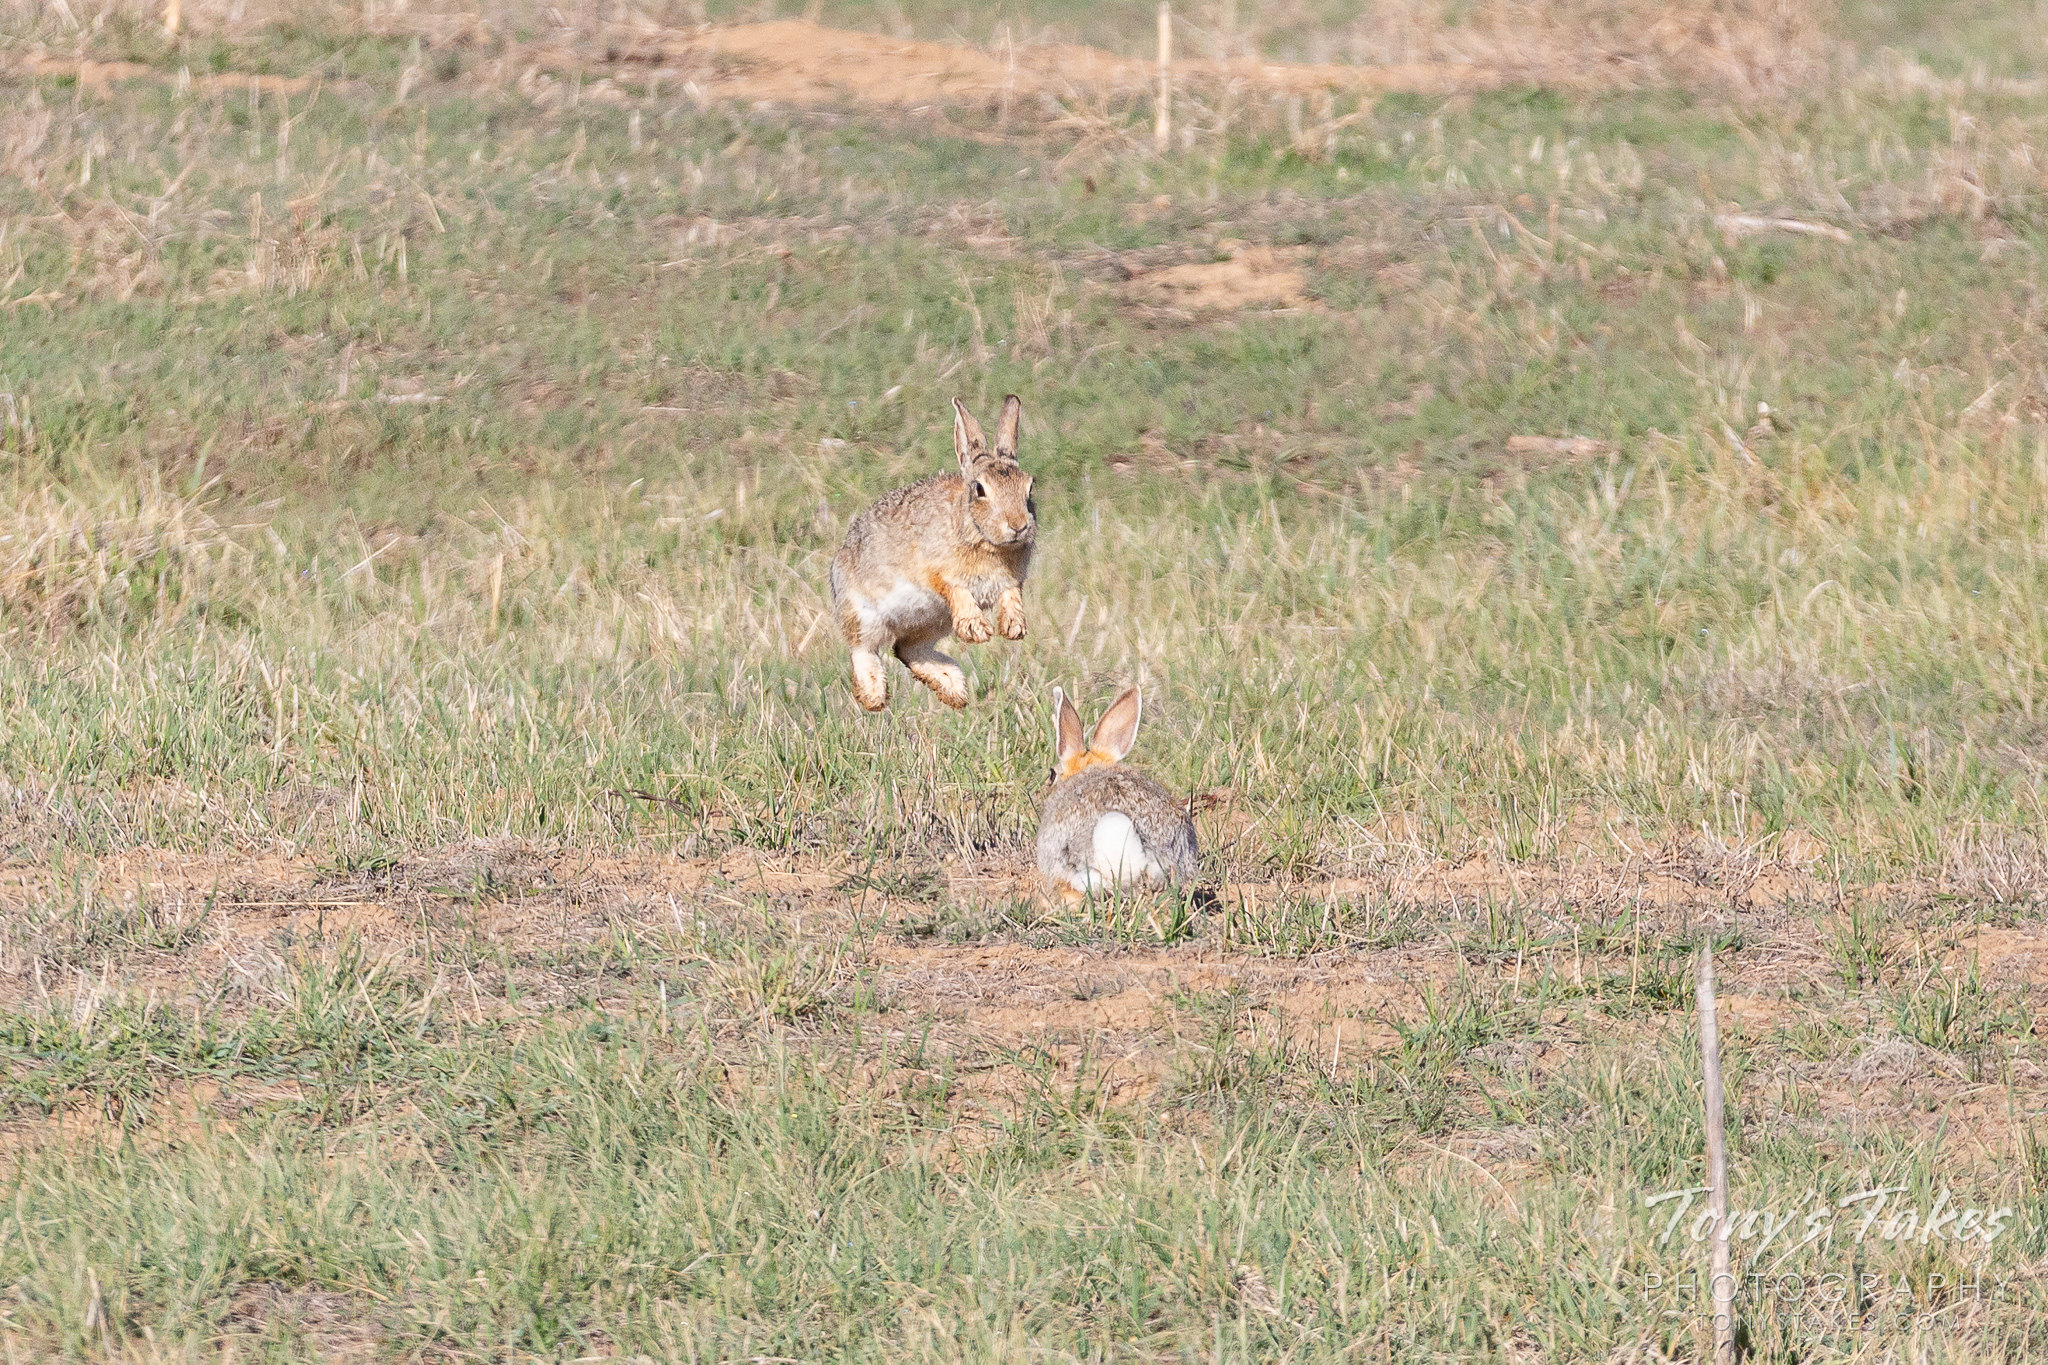 Rabbits bounce around each other in a courtship display. (© Tony's Takes)